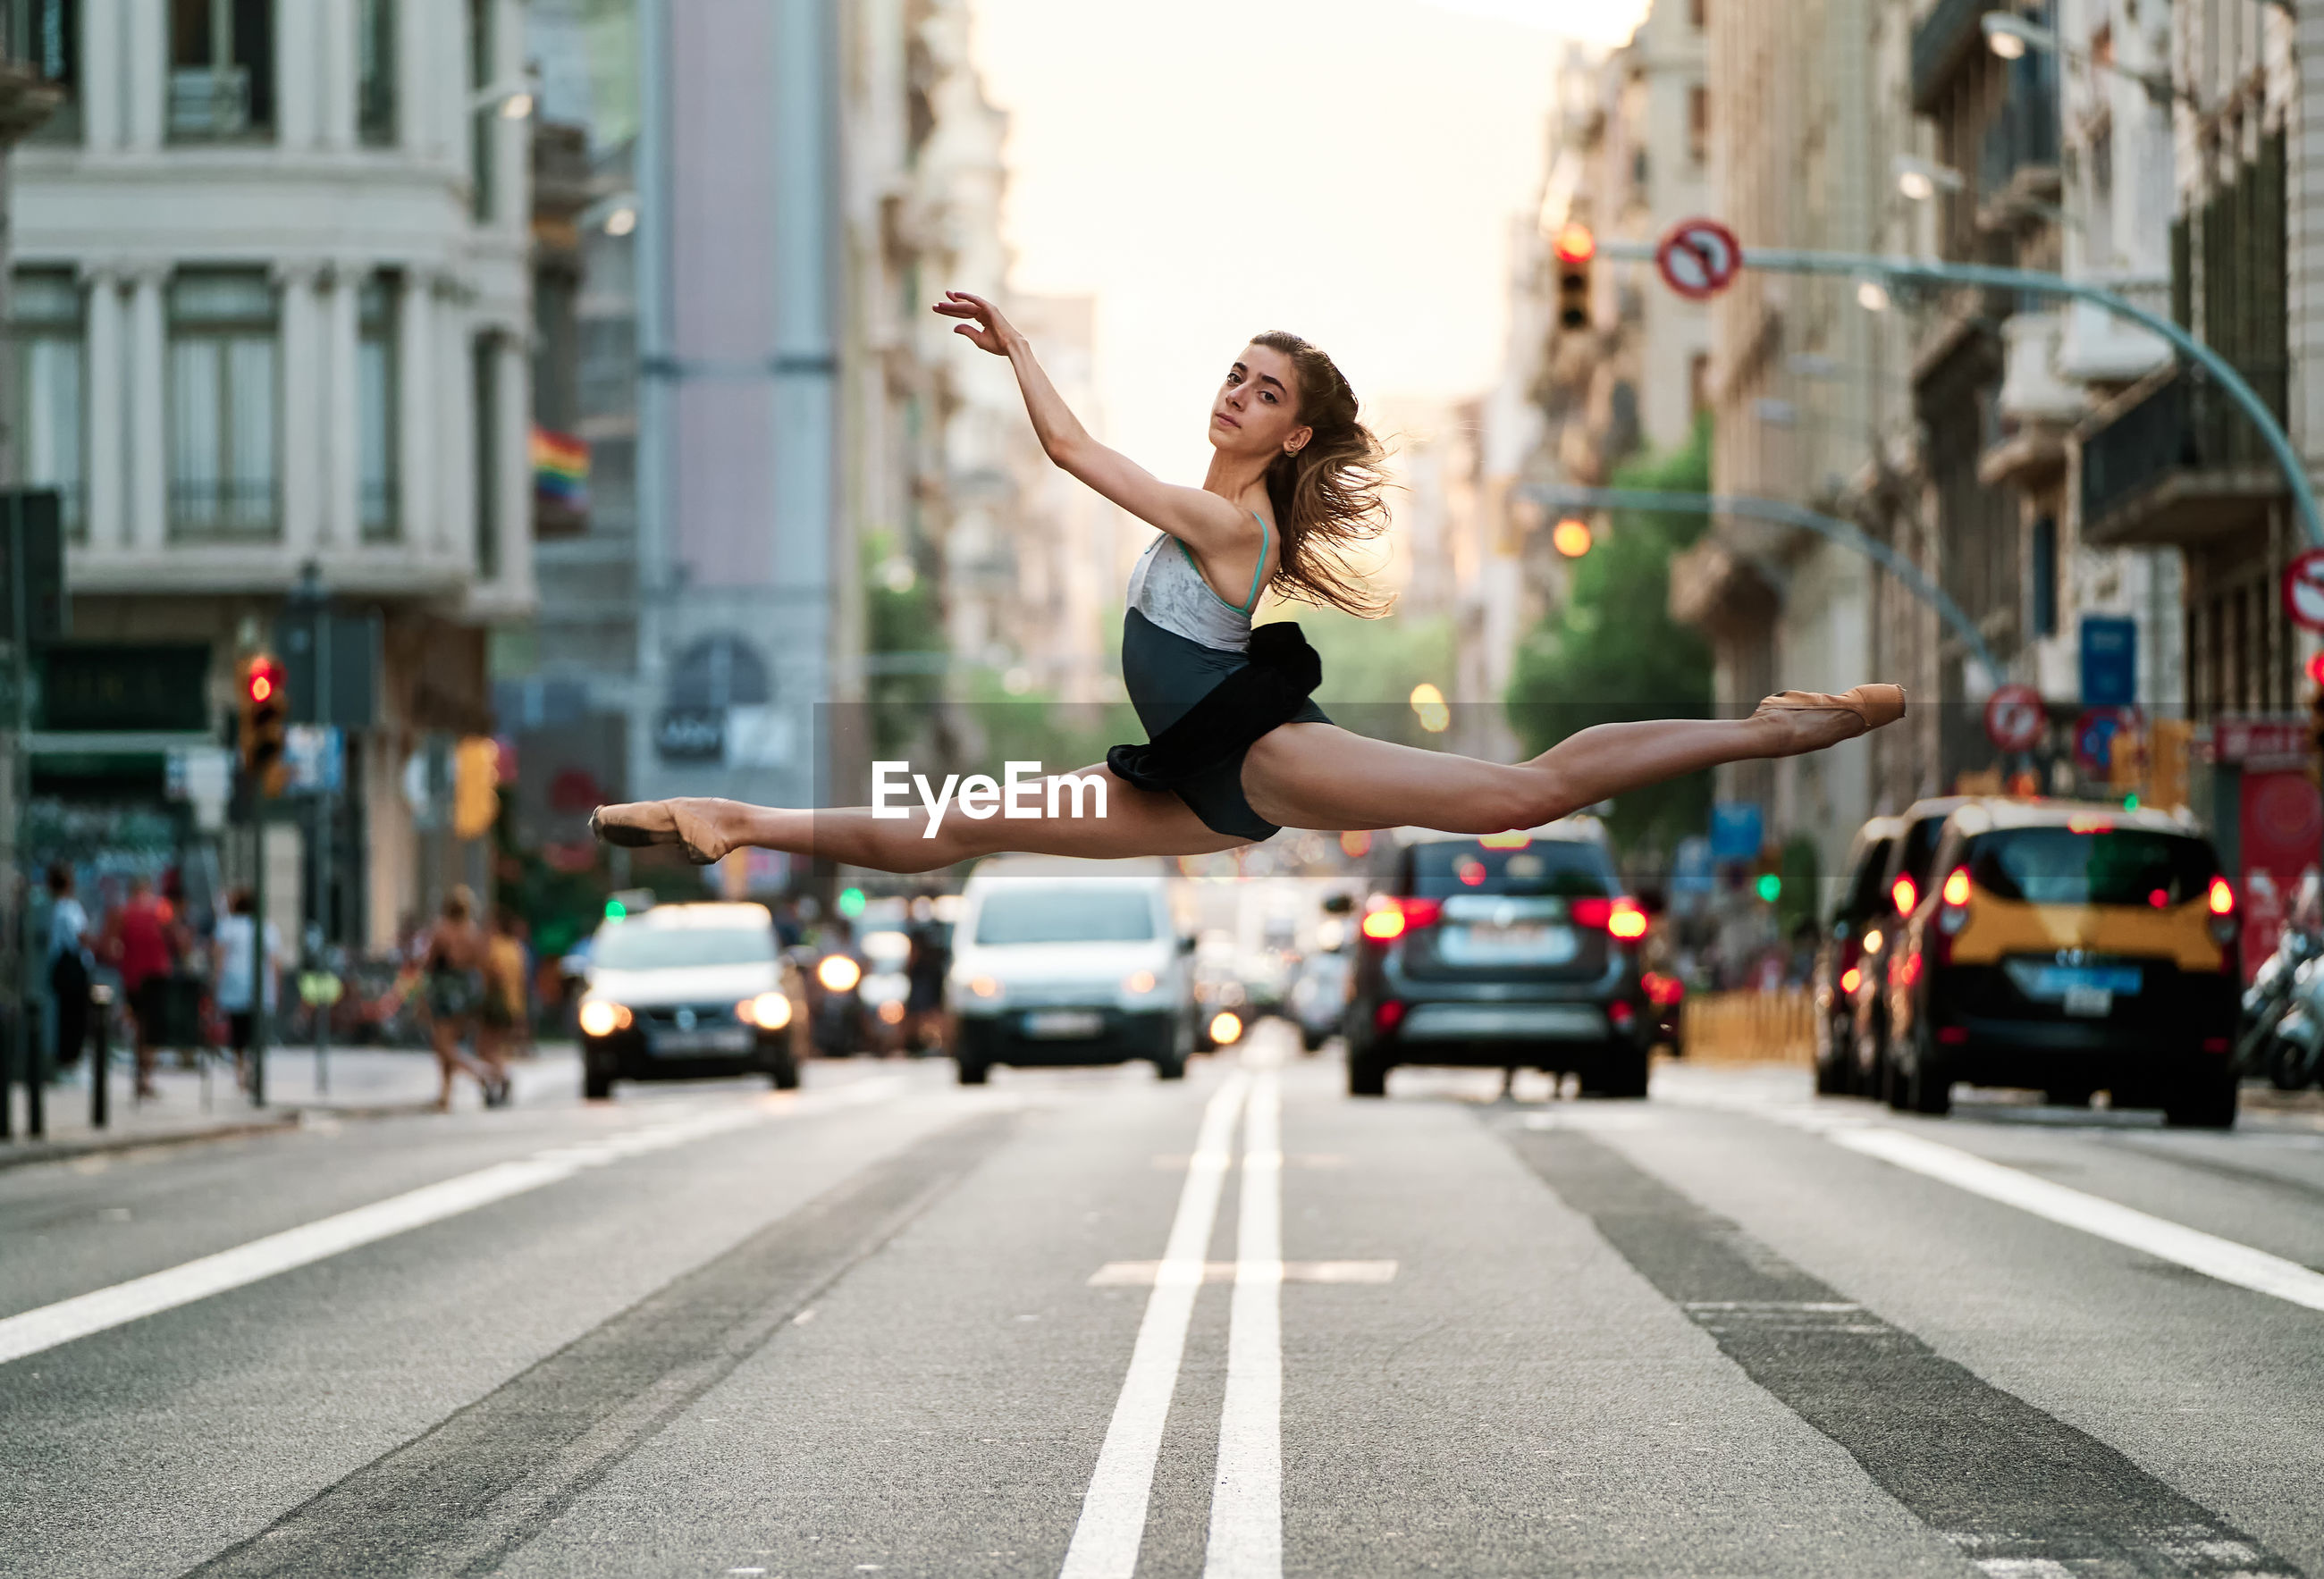 WOMAN JUMPING ON STREET